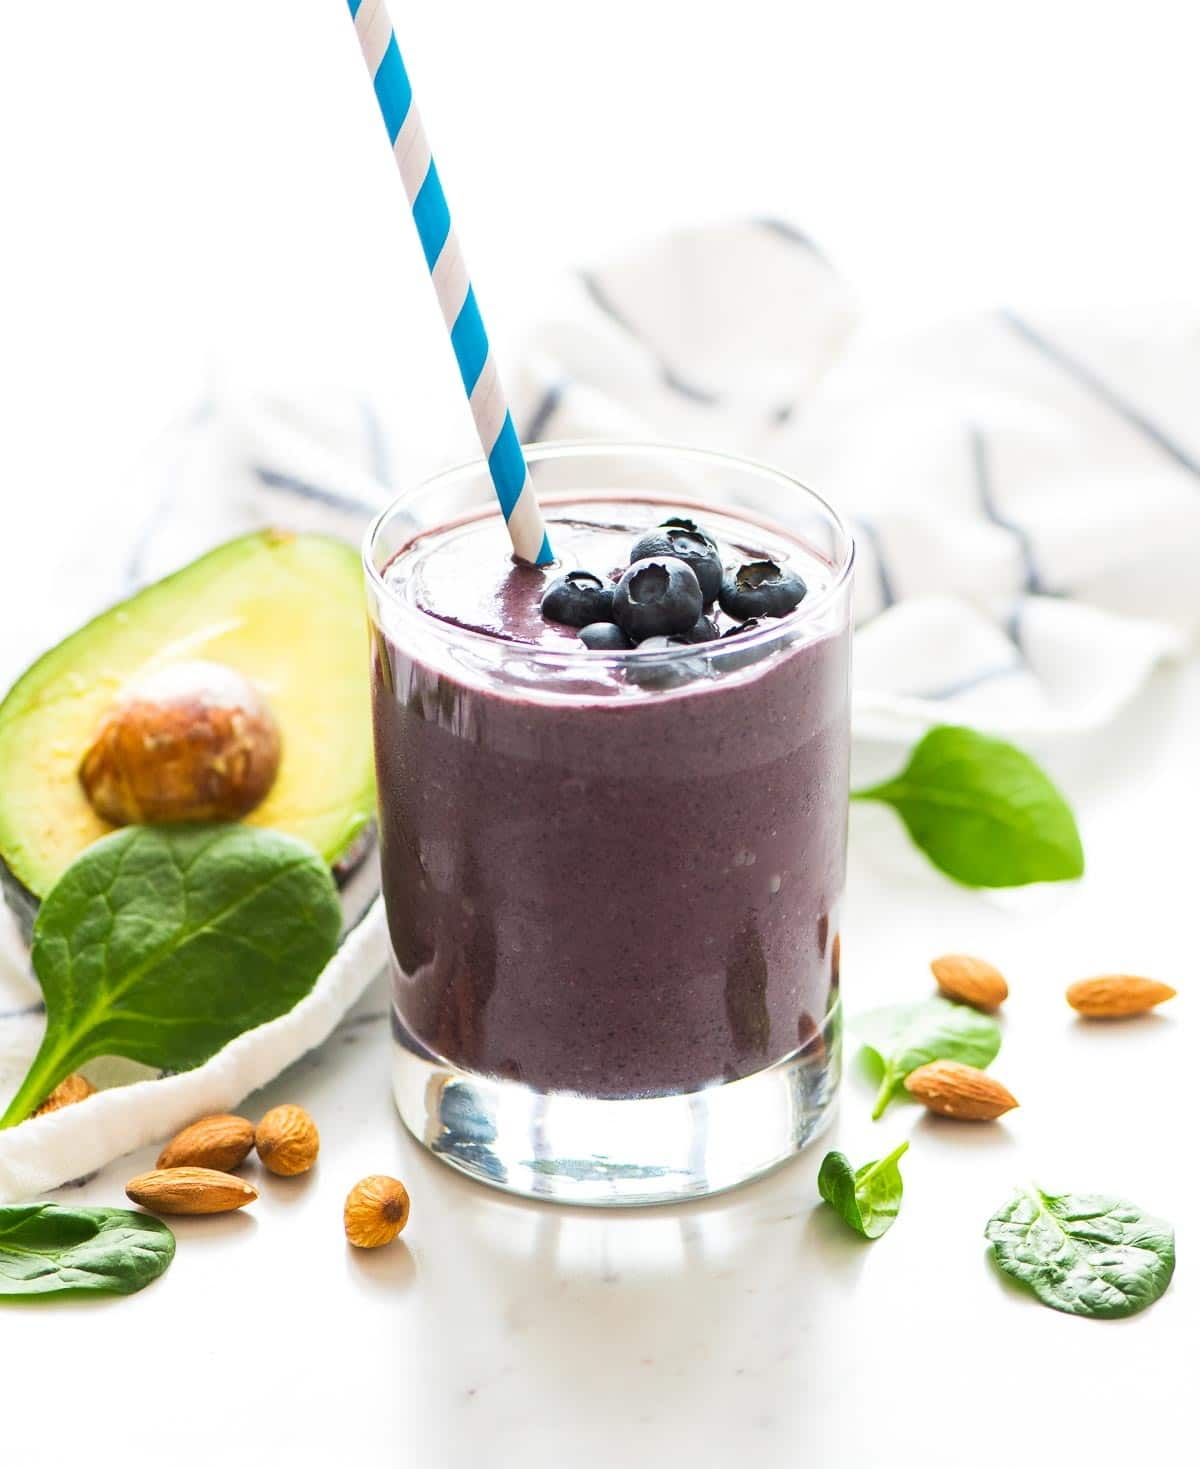 Blueberry Avocado Banana Smoothie in a glass, surrounded by some of the ingredients needed to make it